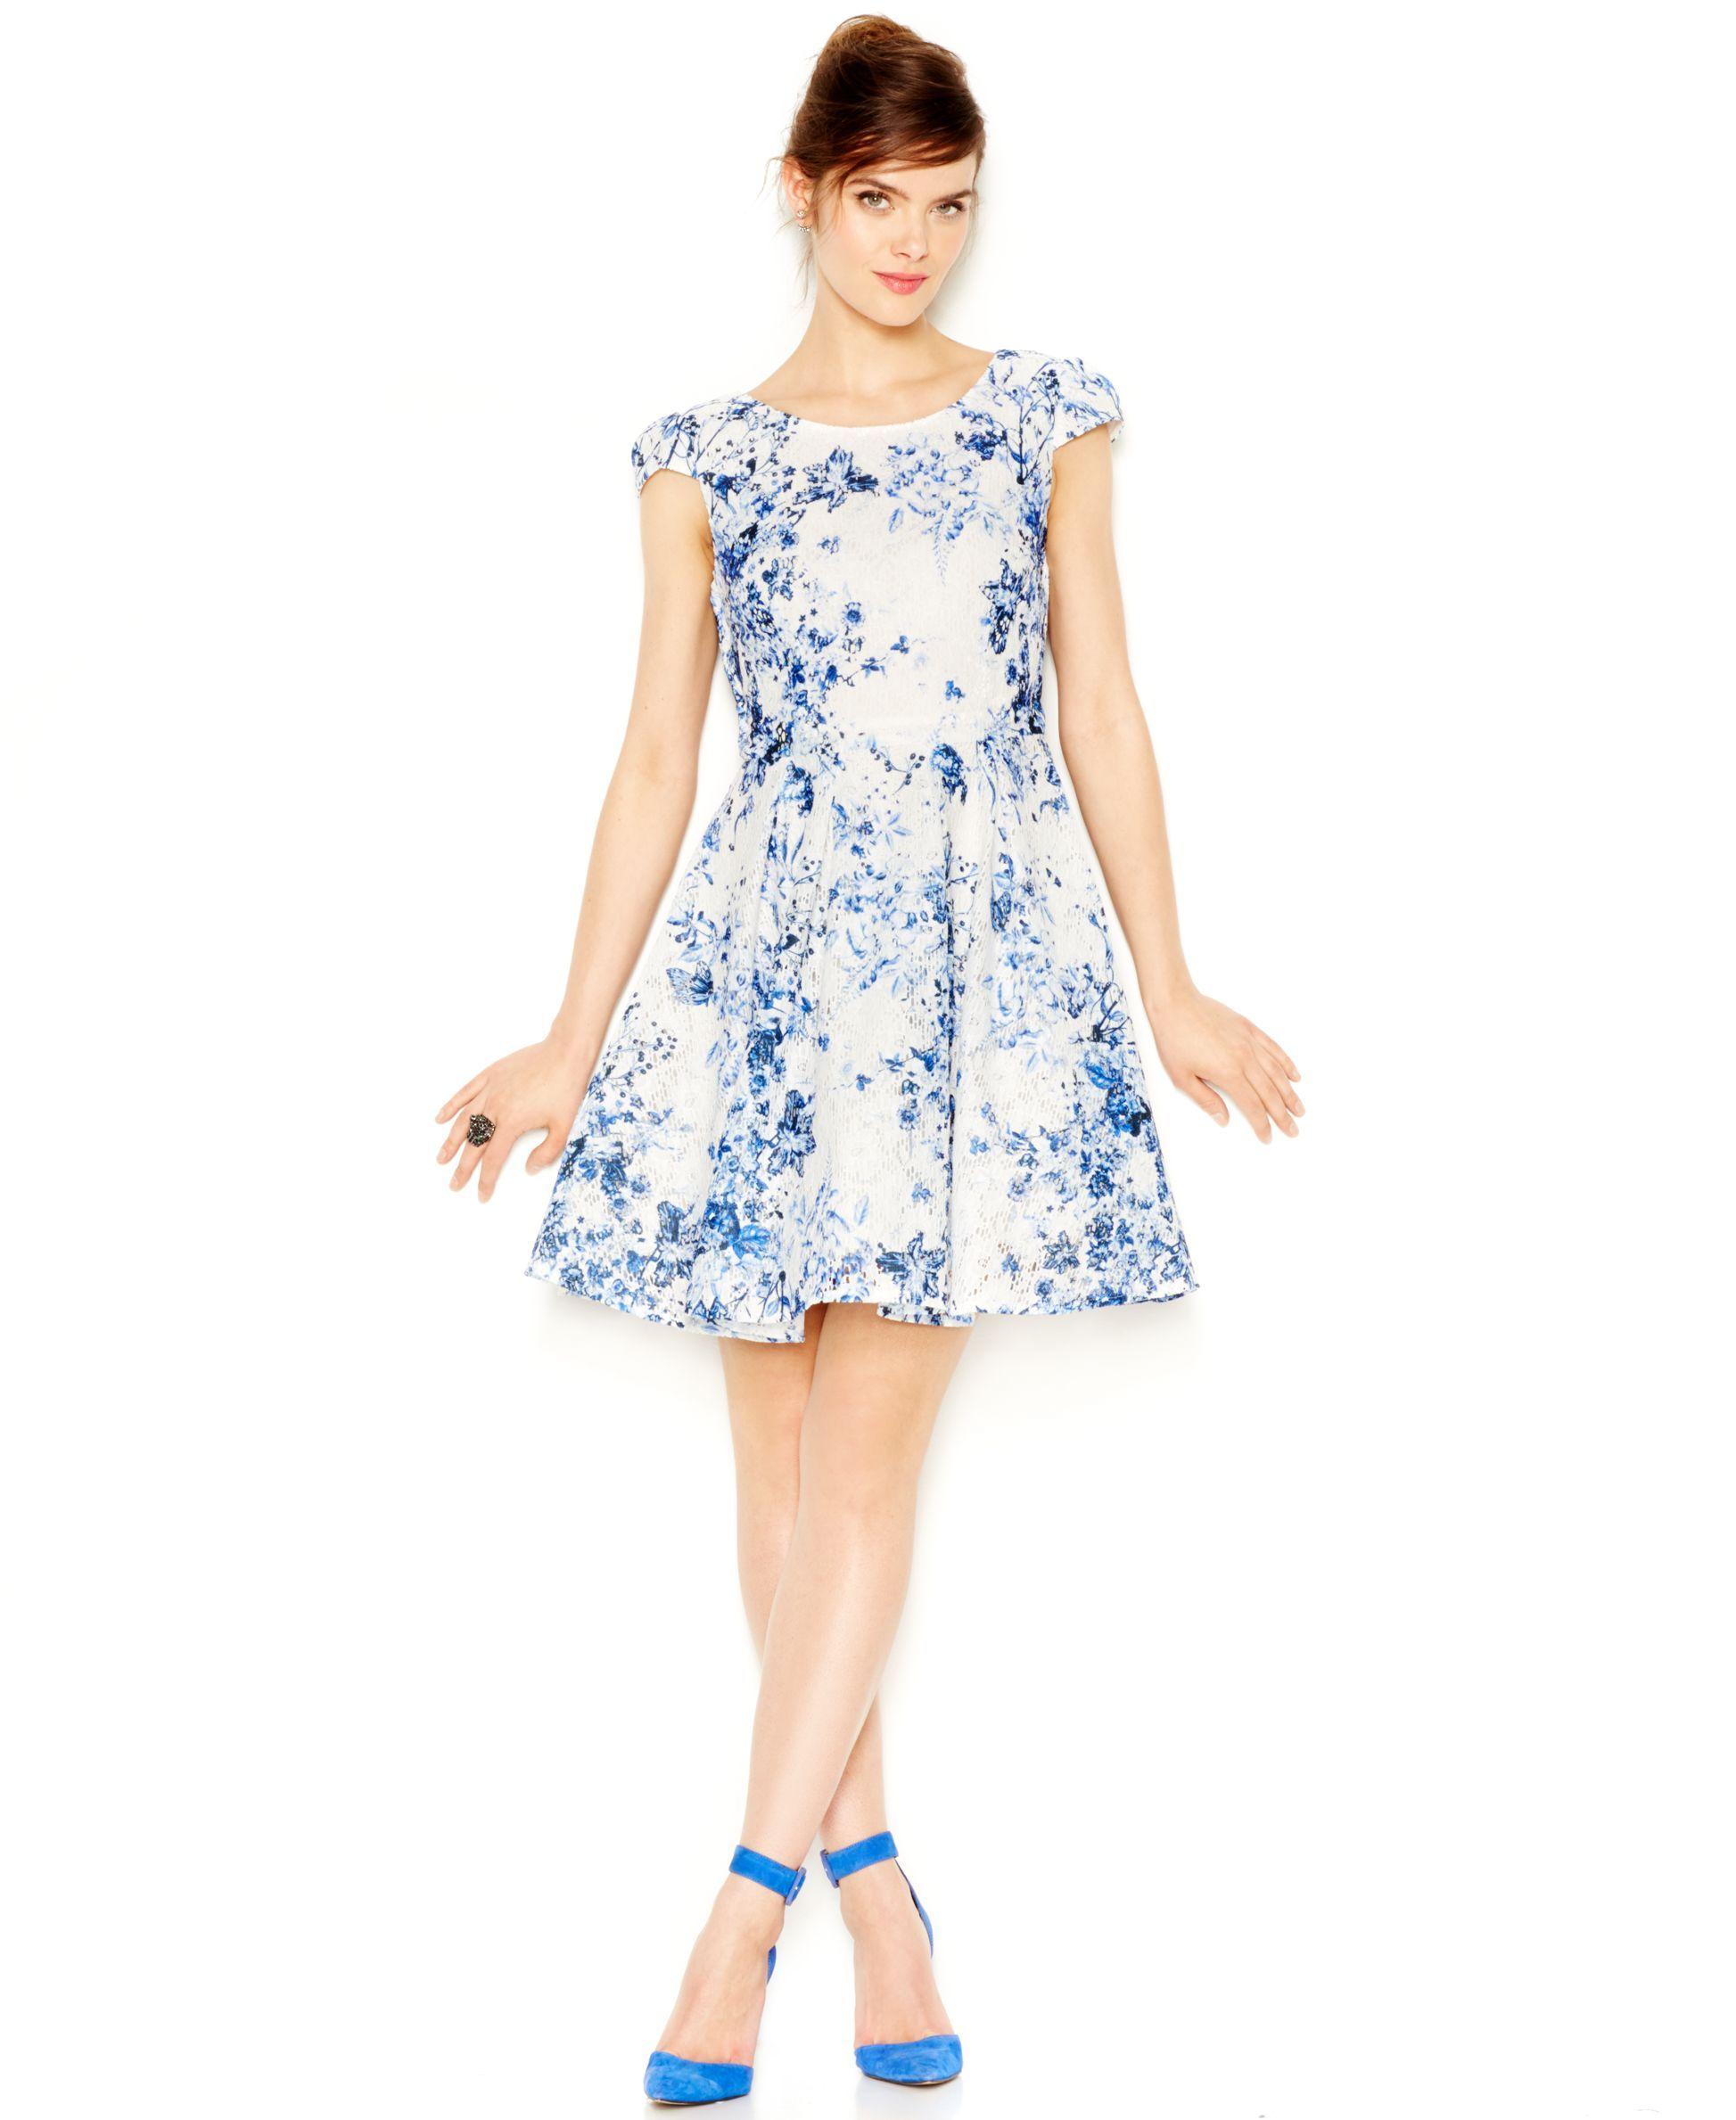 Betsey Johnson Floral-Print Lace Fit & Flair Dress | c l o t h i n g ...